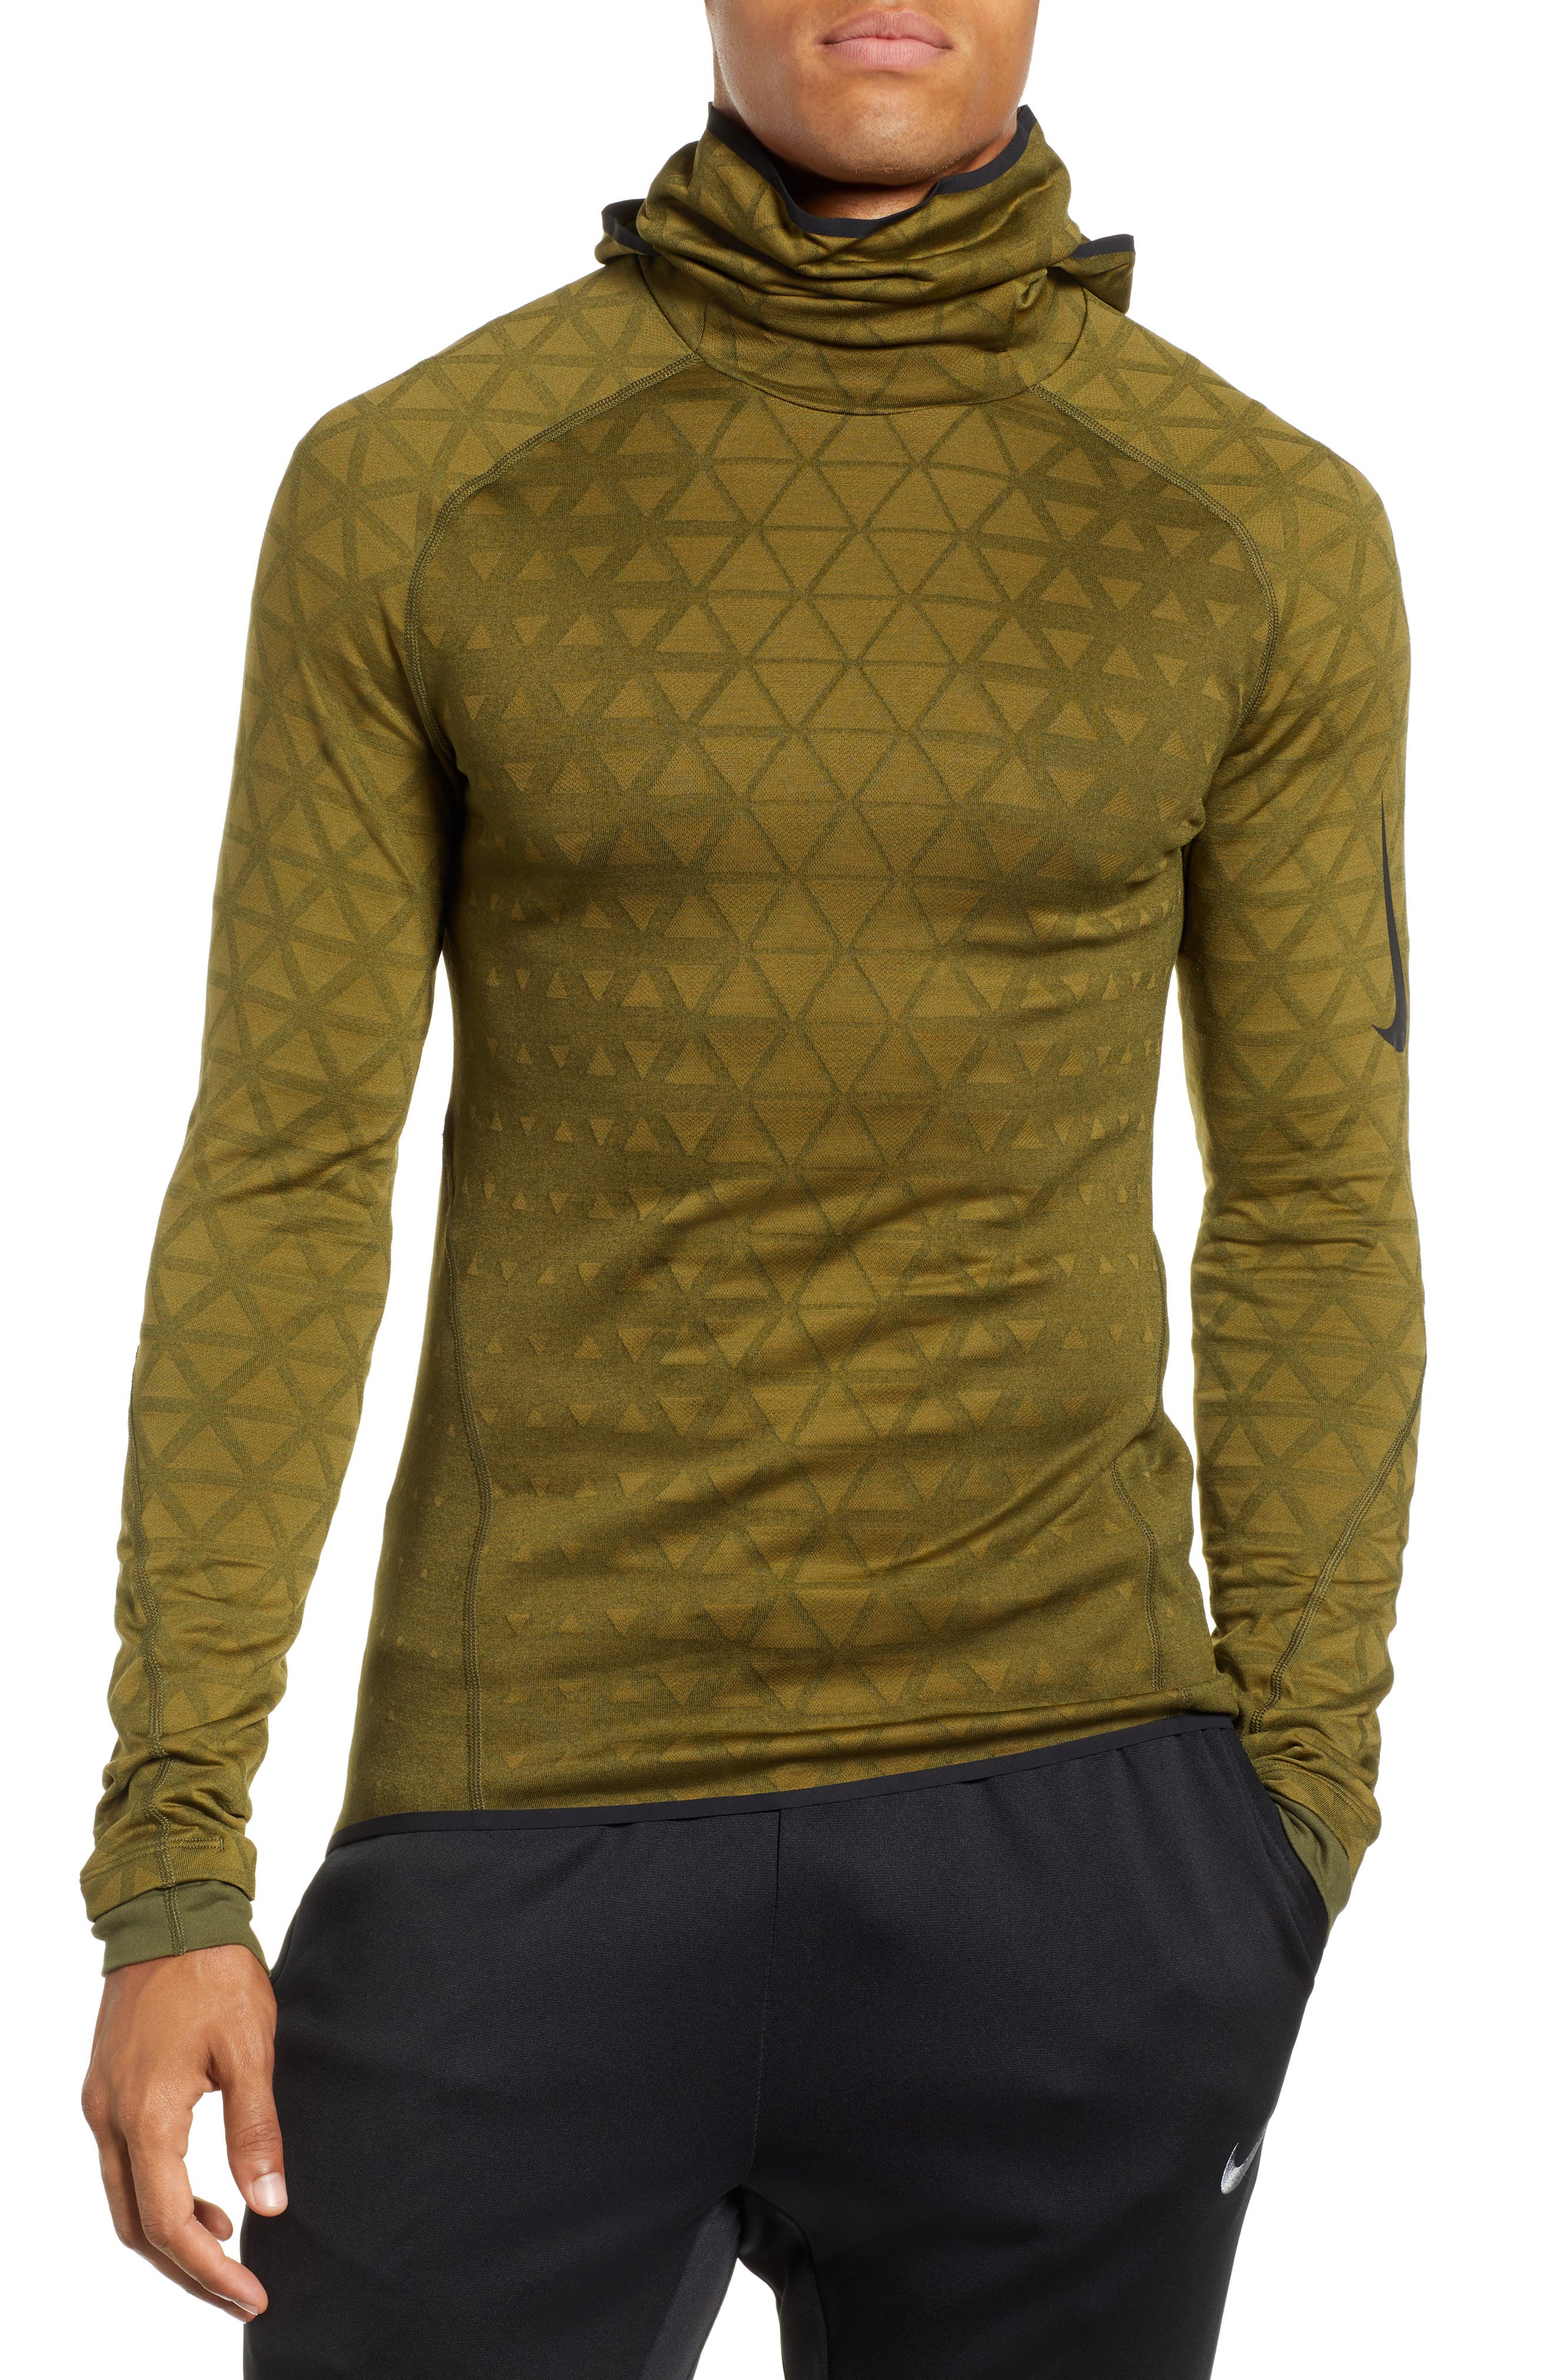 Therma Sphere Hooded Training Top,                         Main,                         color, OLIVE/ OLIVE FLAK/ BLACK